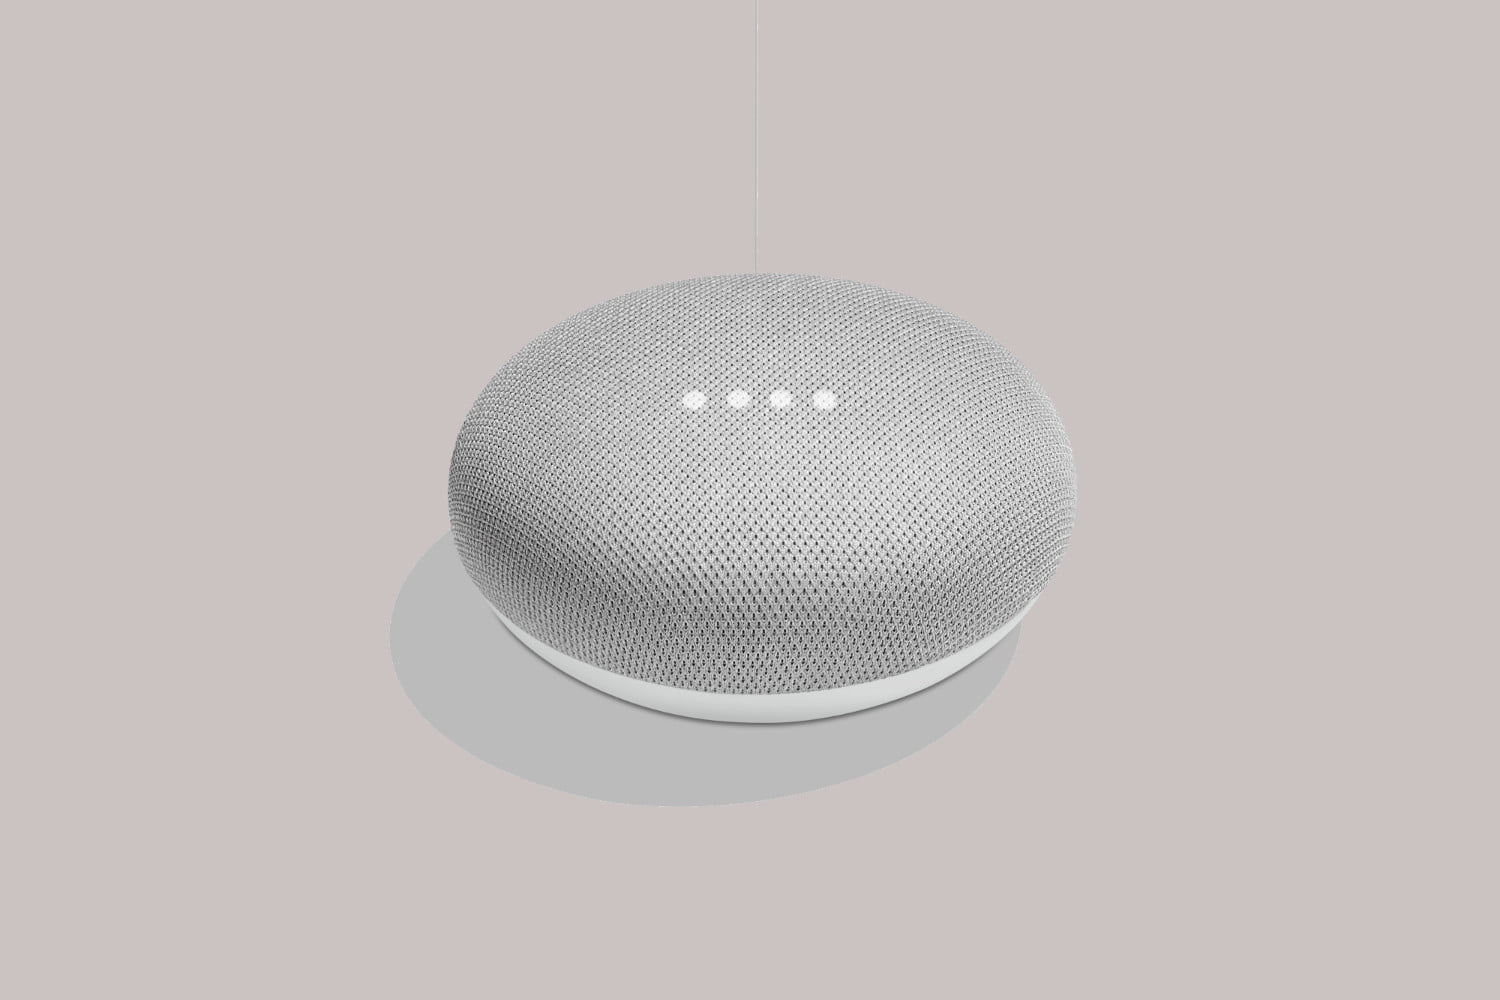 Best Buy and Walmart cut up to 50% off these Google Home smart speakers